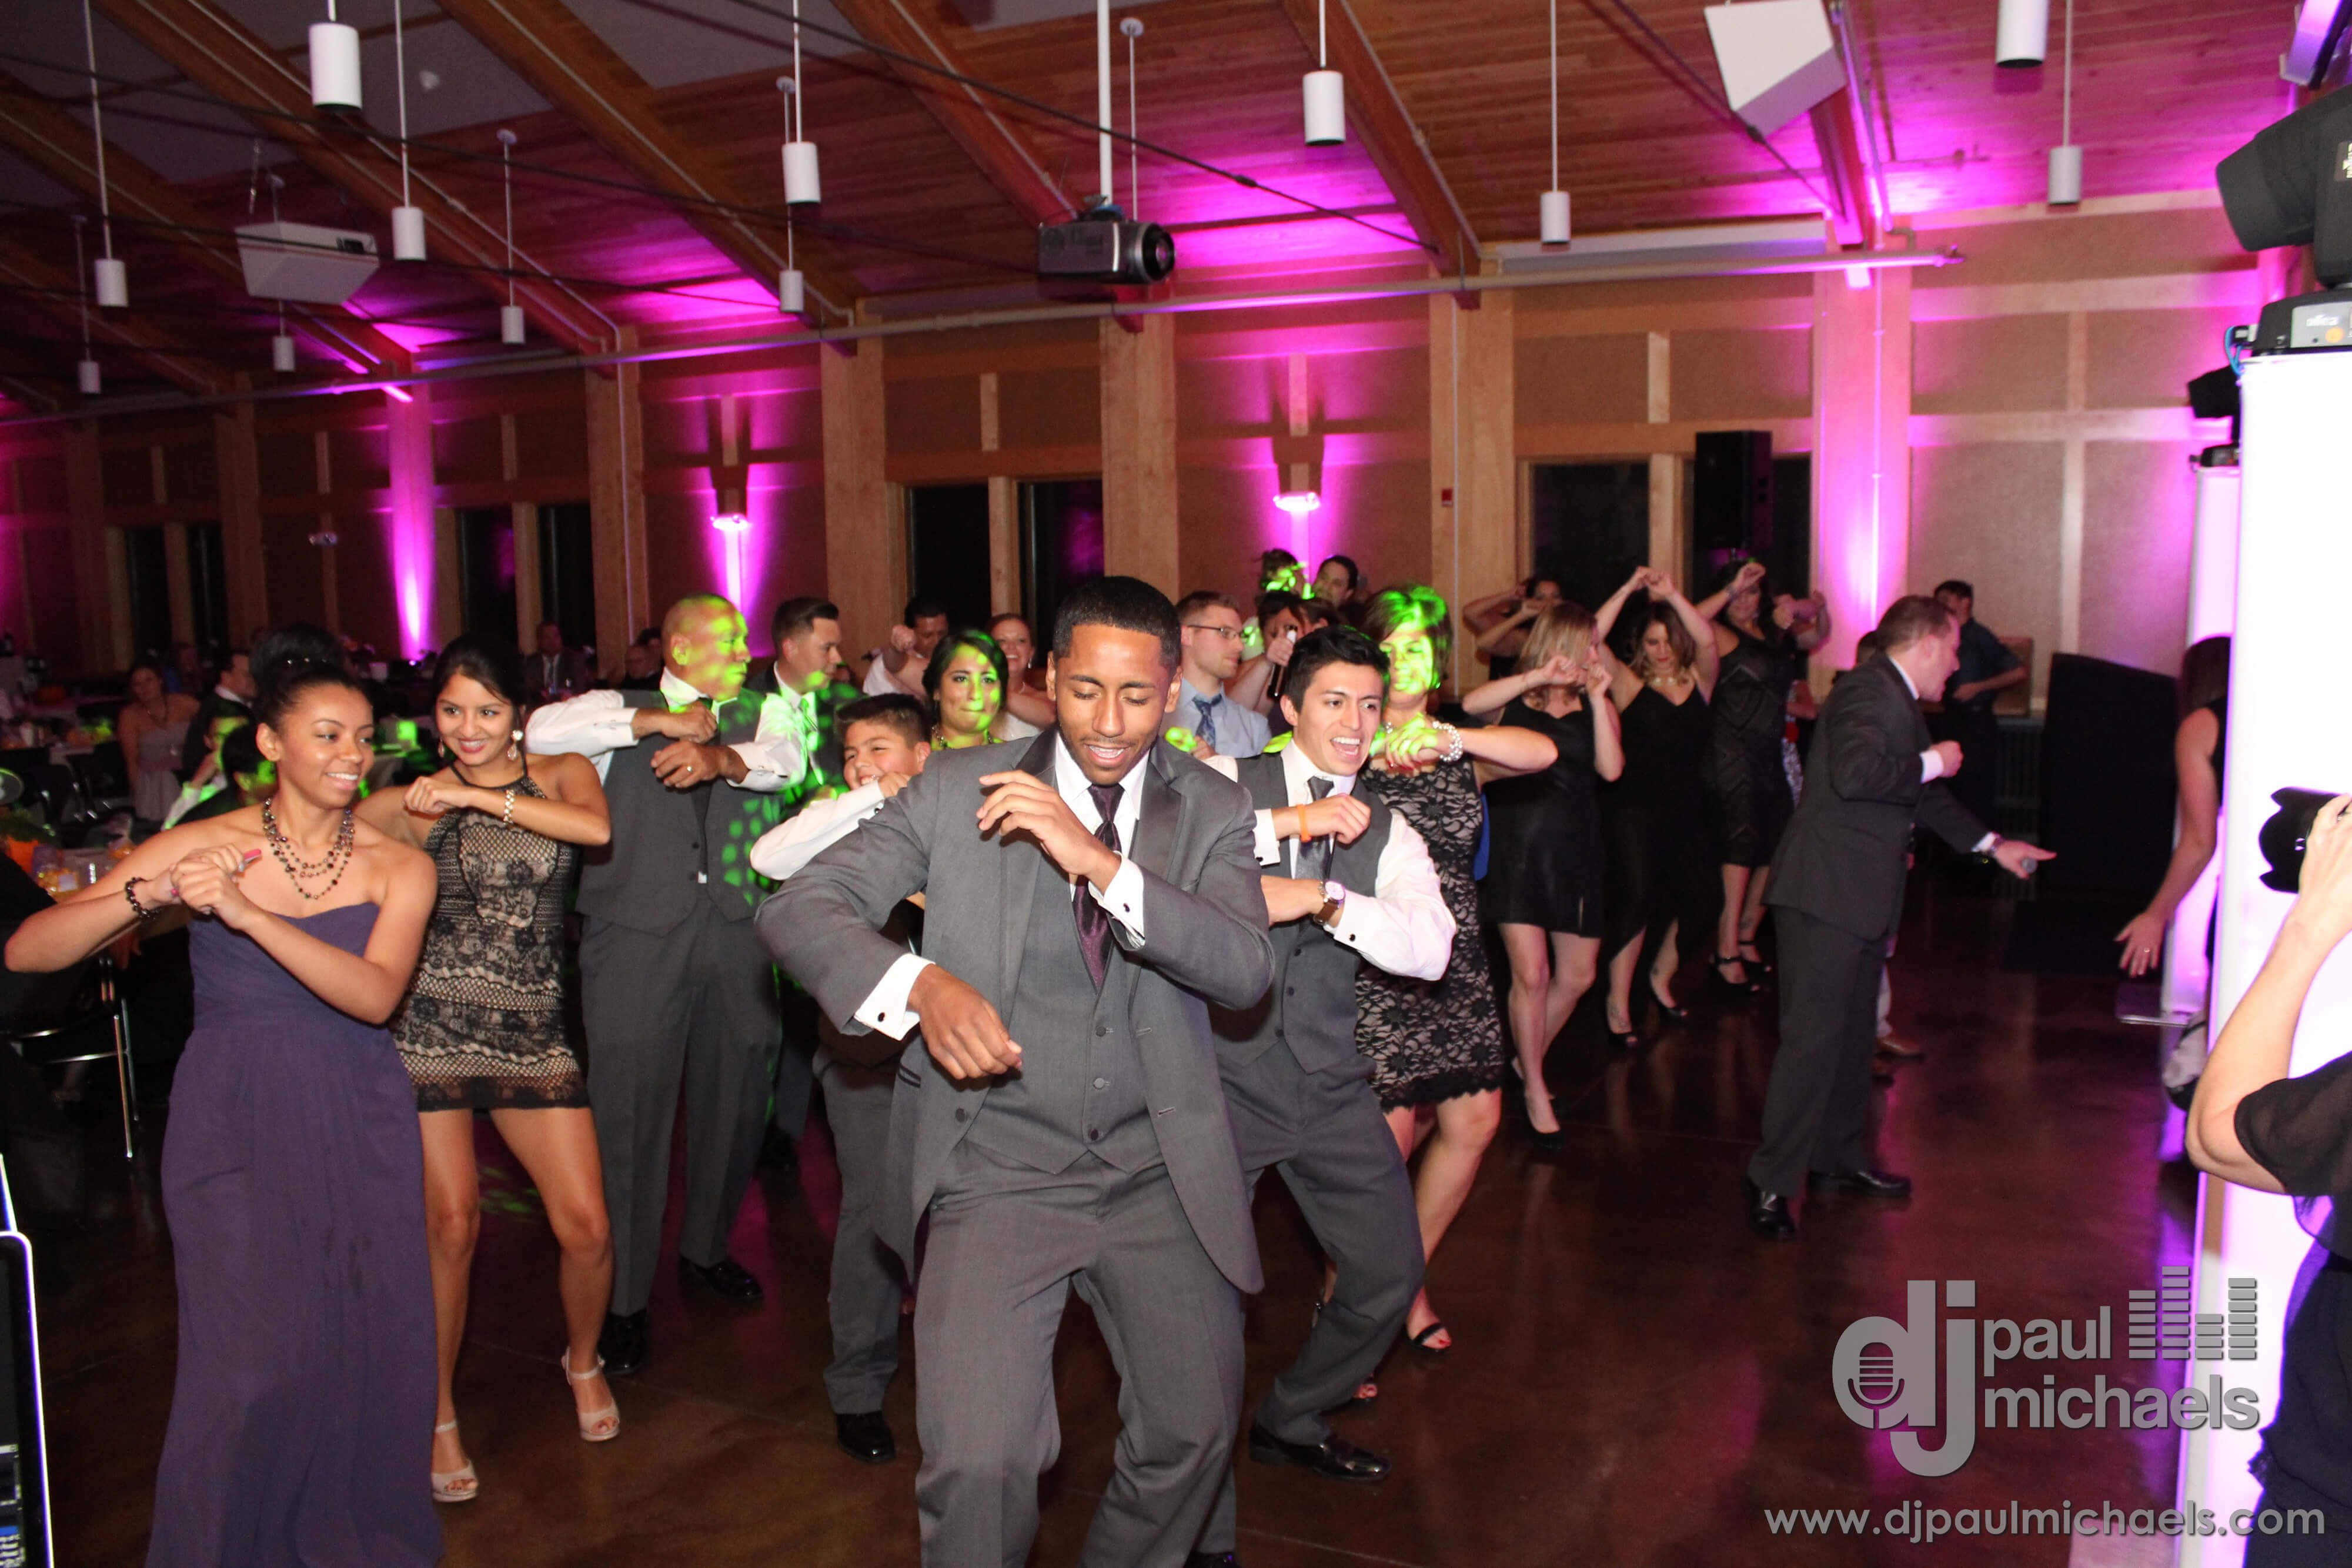 Four Rivers Channahon Great Wedding Dancing Blog Cover